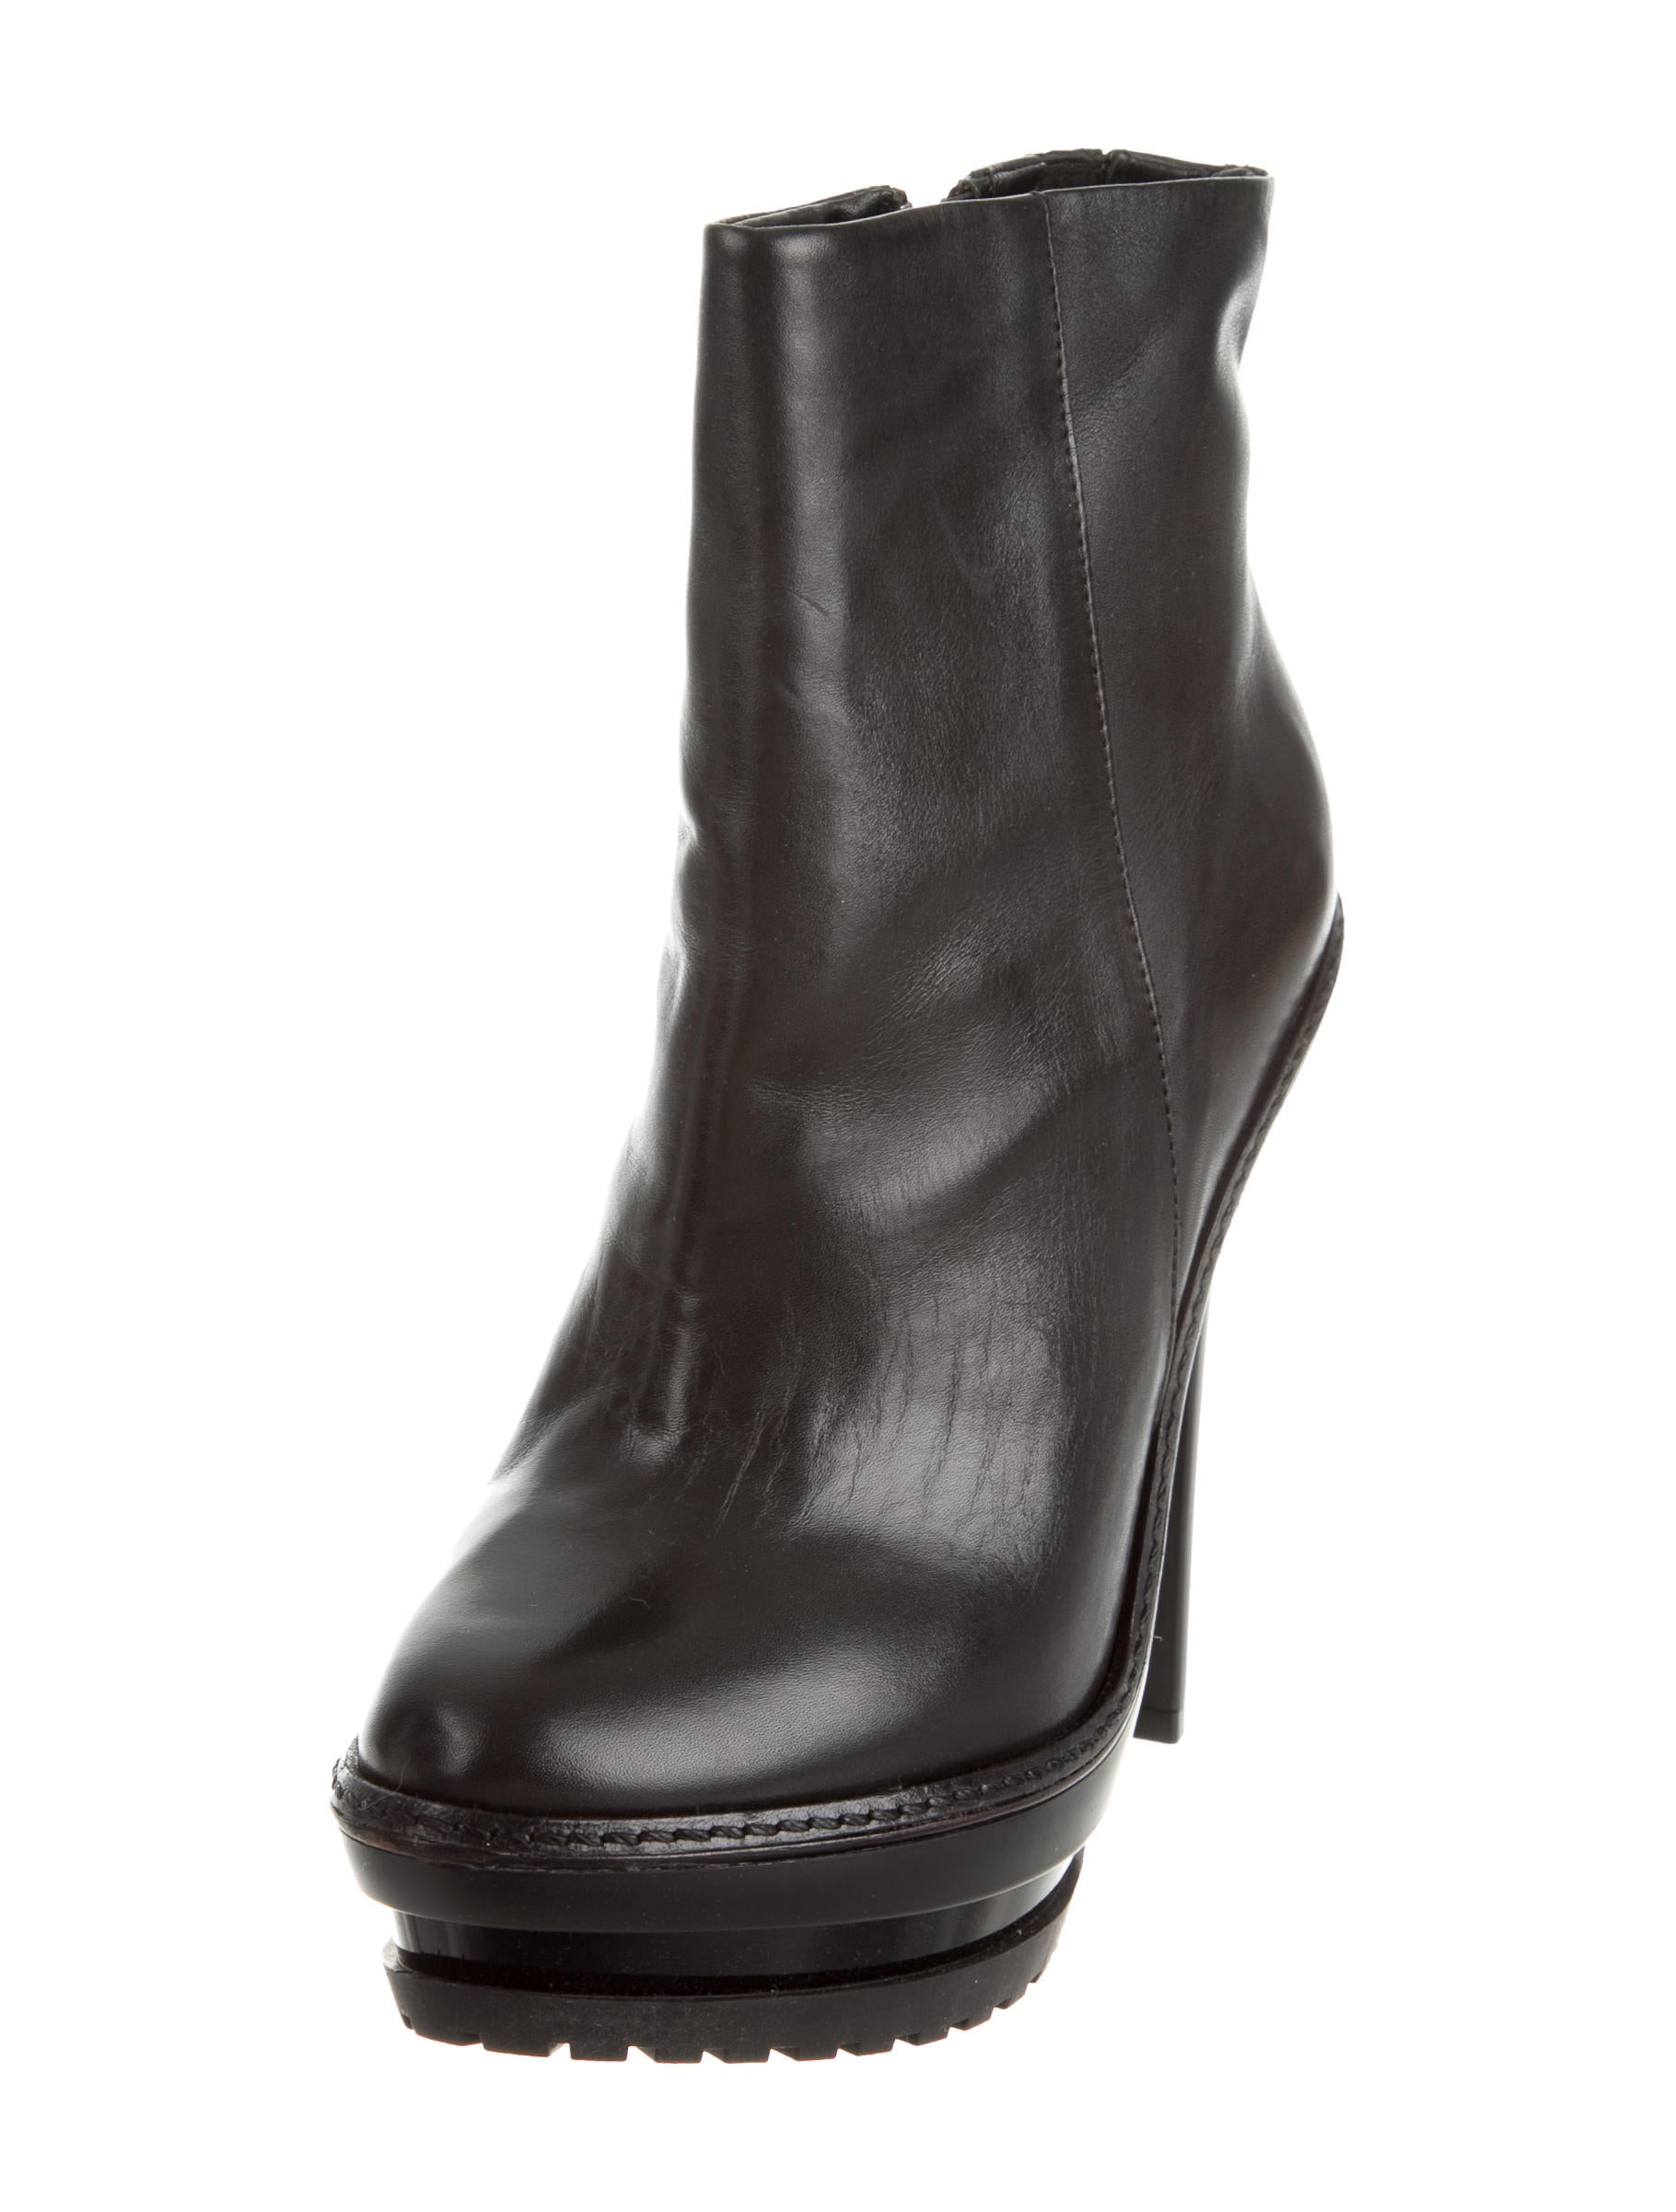 Boots are suitable to be worn on cool autumn days as well as cold autumn days. Their styles can be ranging from flat heels to high heels, and different styles of boots can be worn with different clothes on different occasions.